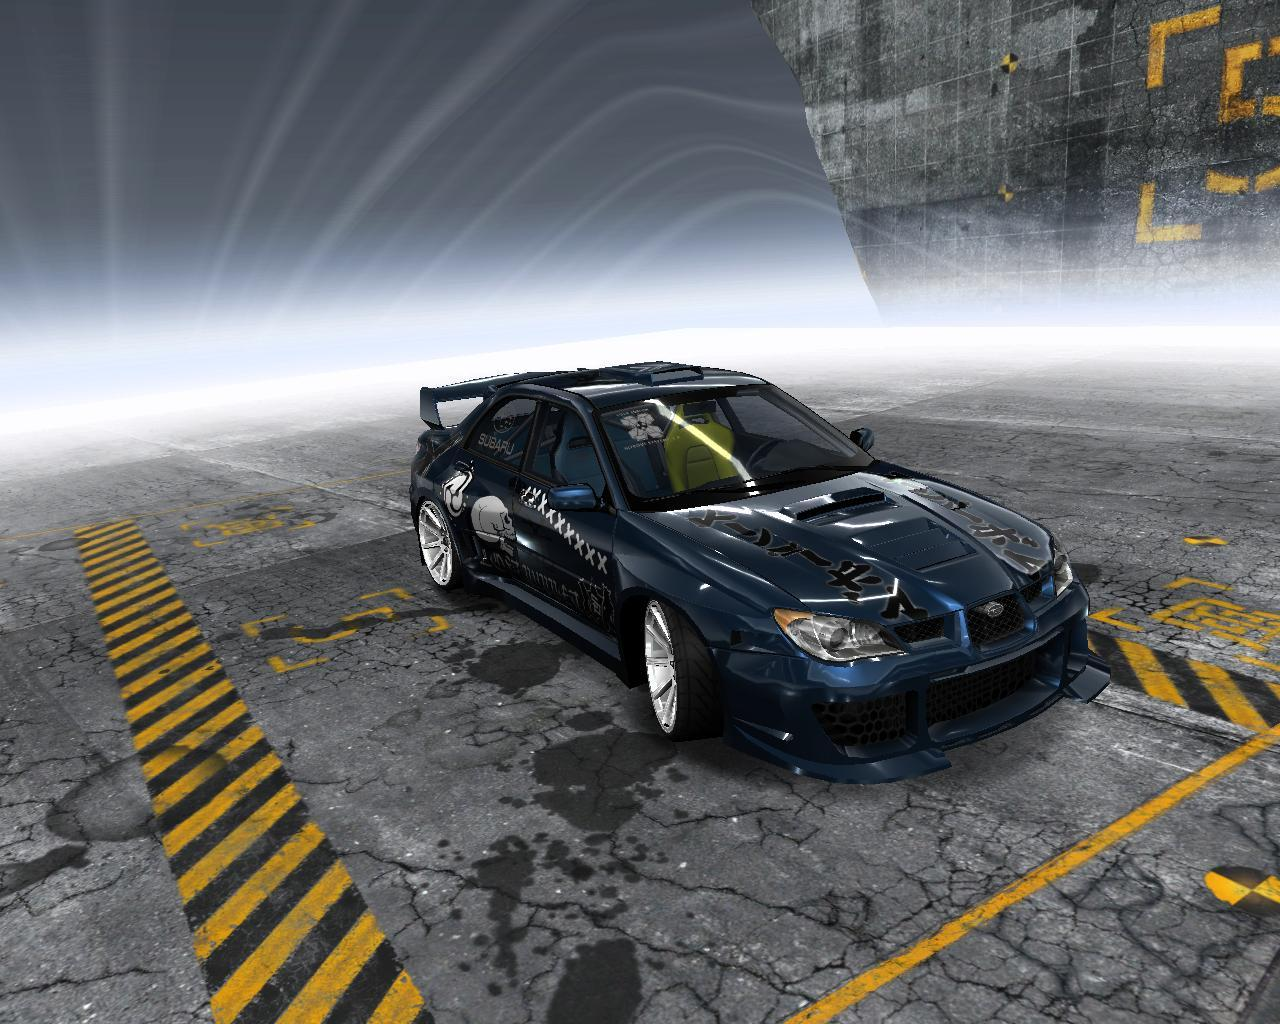 12698 download wallpaper Transport, Auto, Subaru screensavers and pictures for free